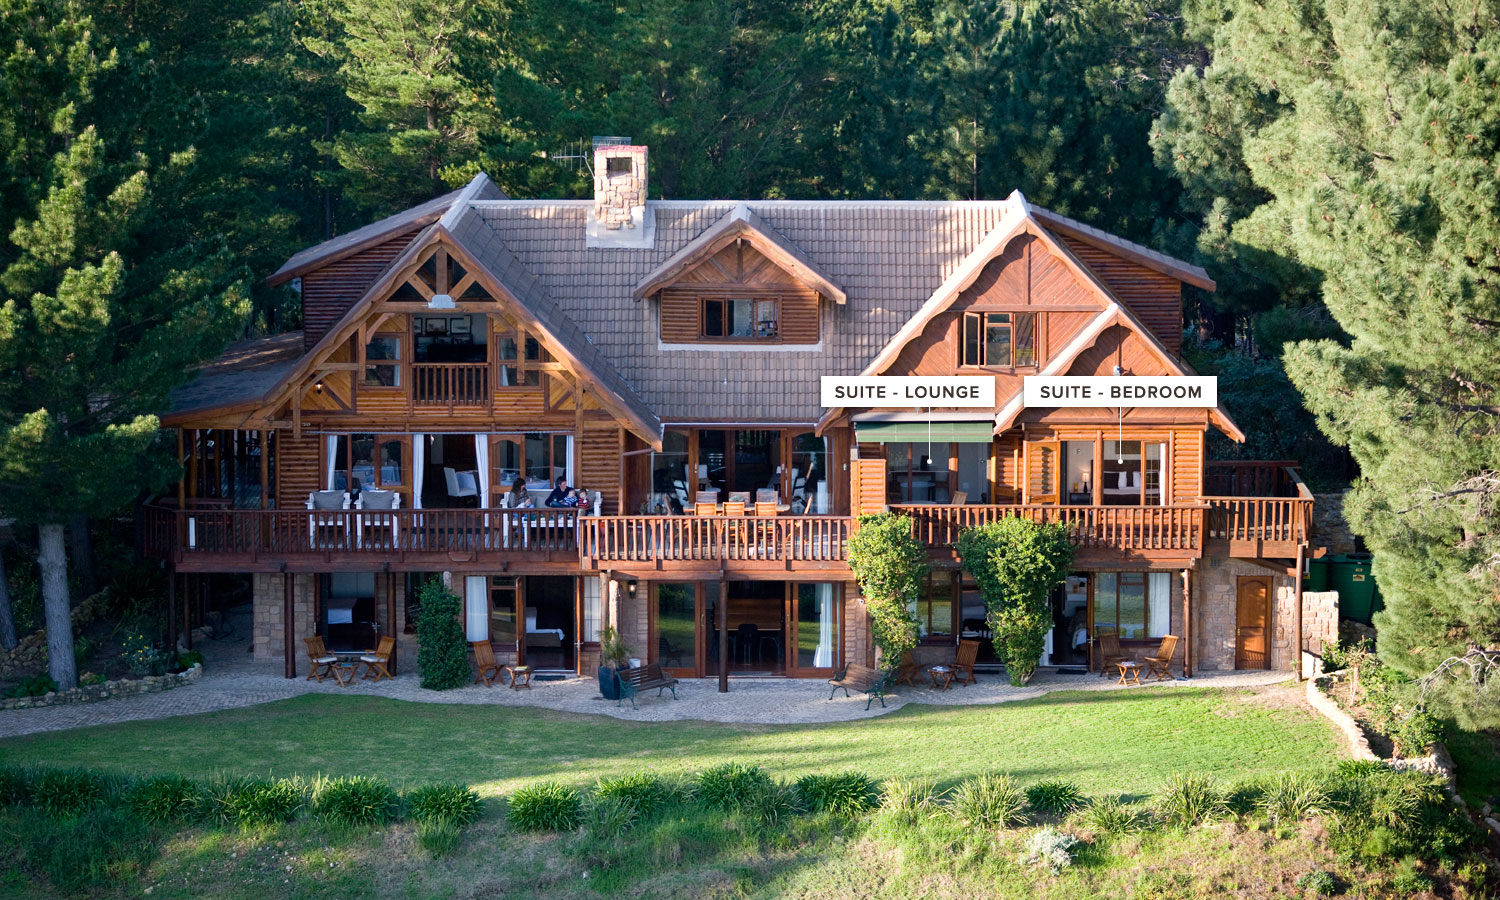 The Main Lodge – B&B accomodation